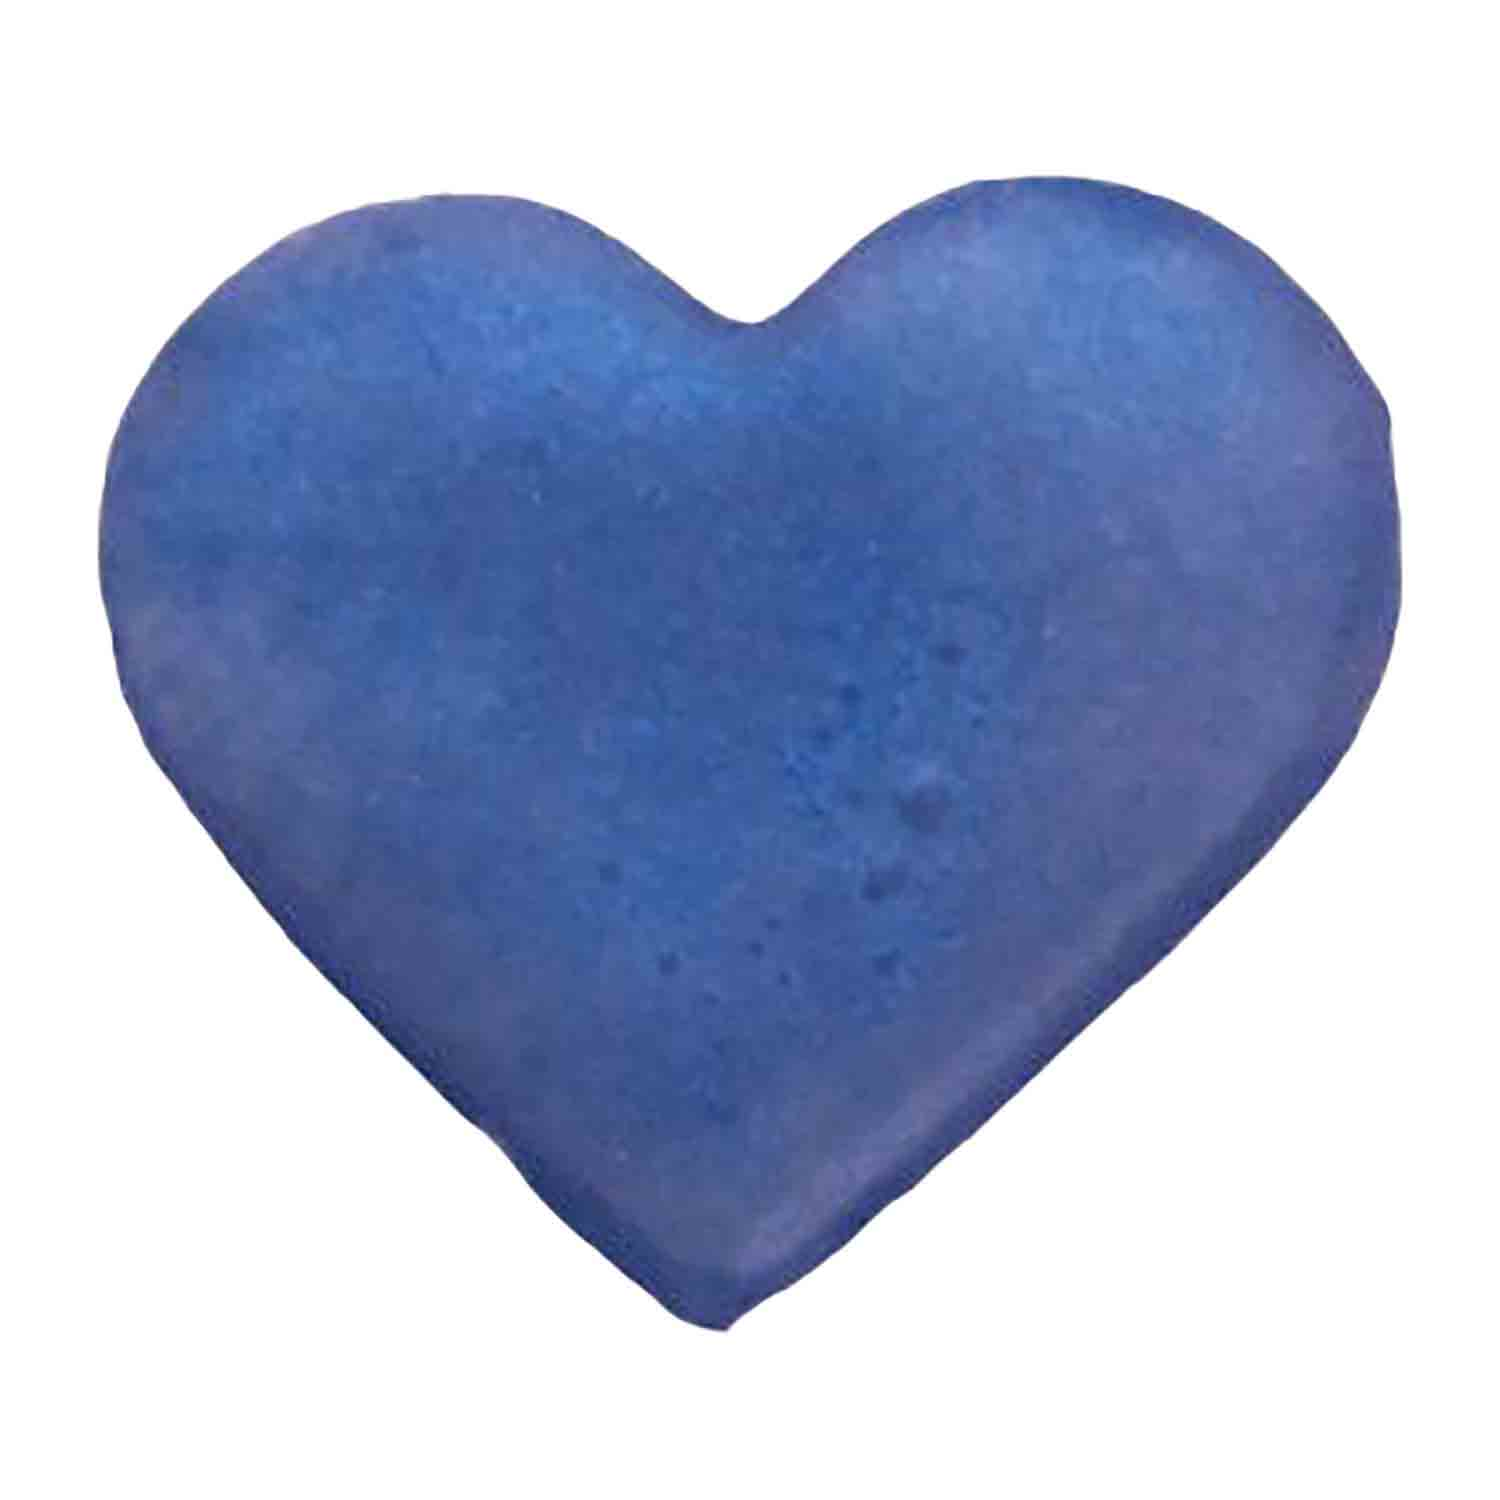 Cornflower Blue Designer Luster Dust (Replaces Midnight Blue 43-1220)